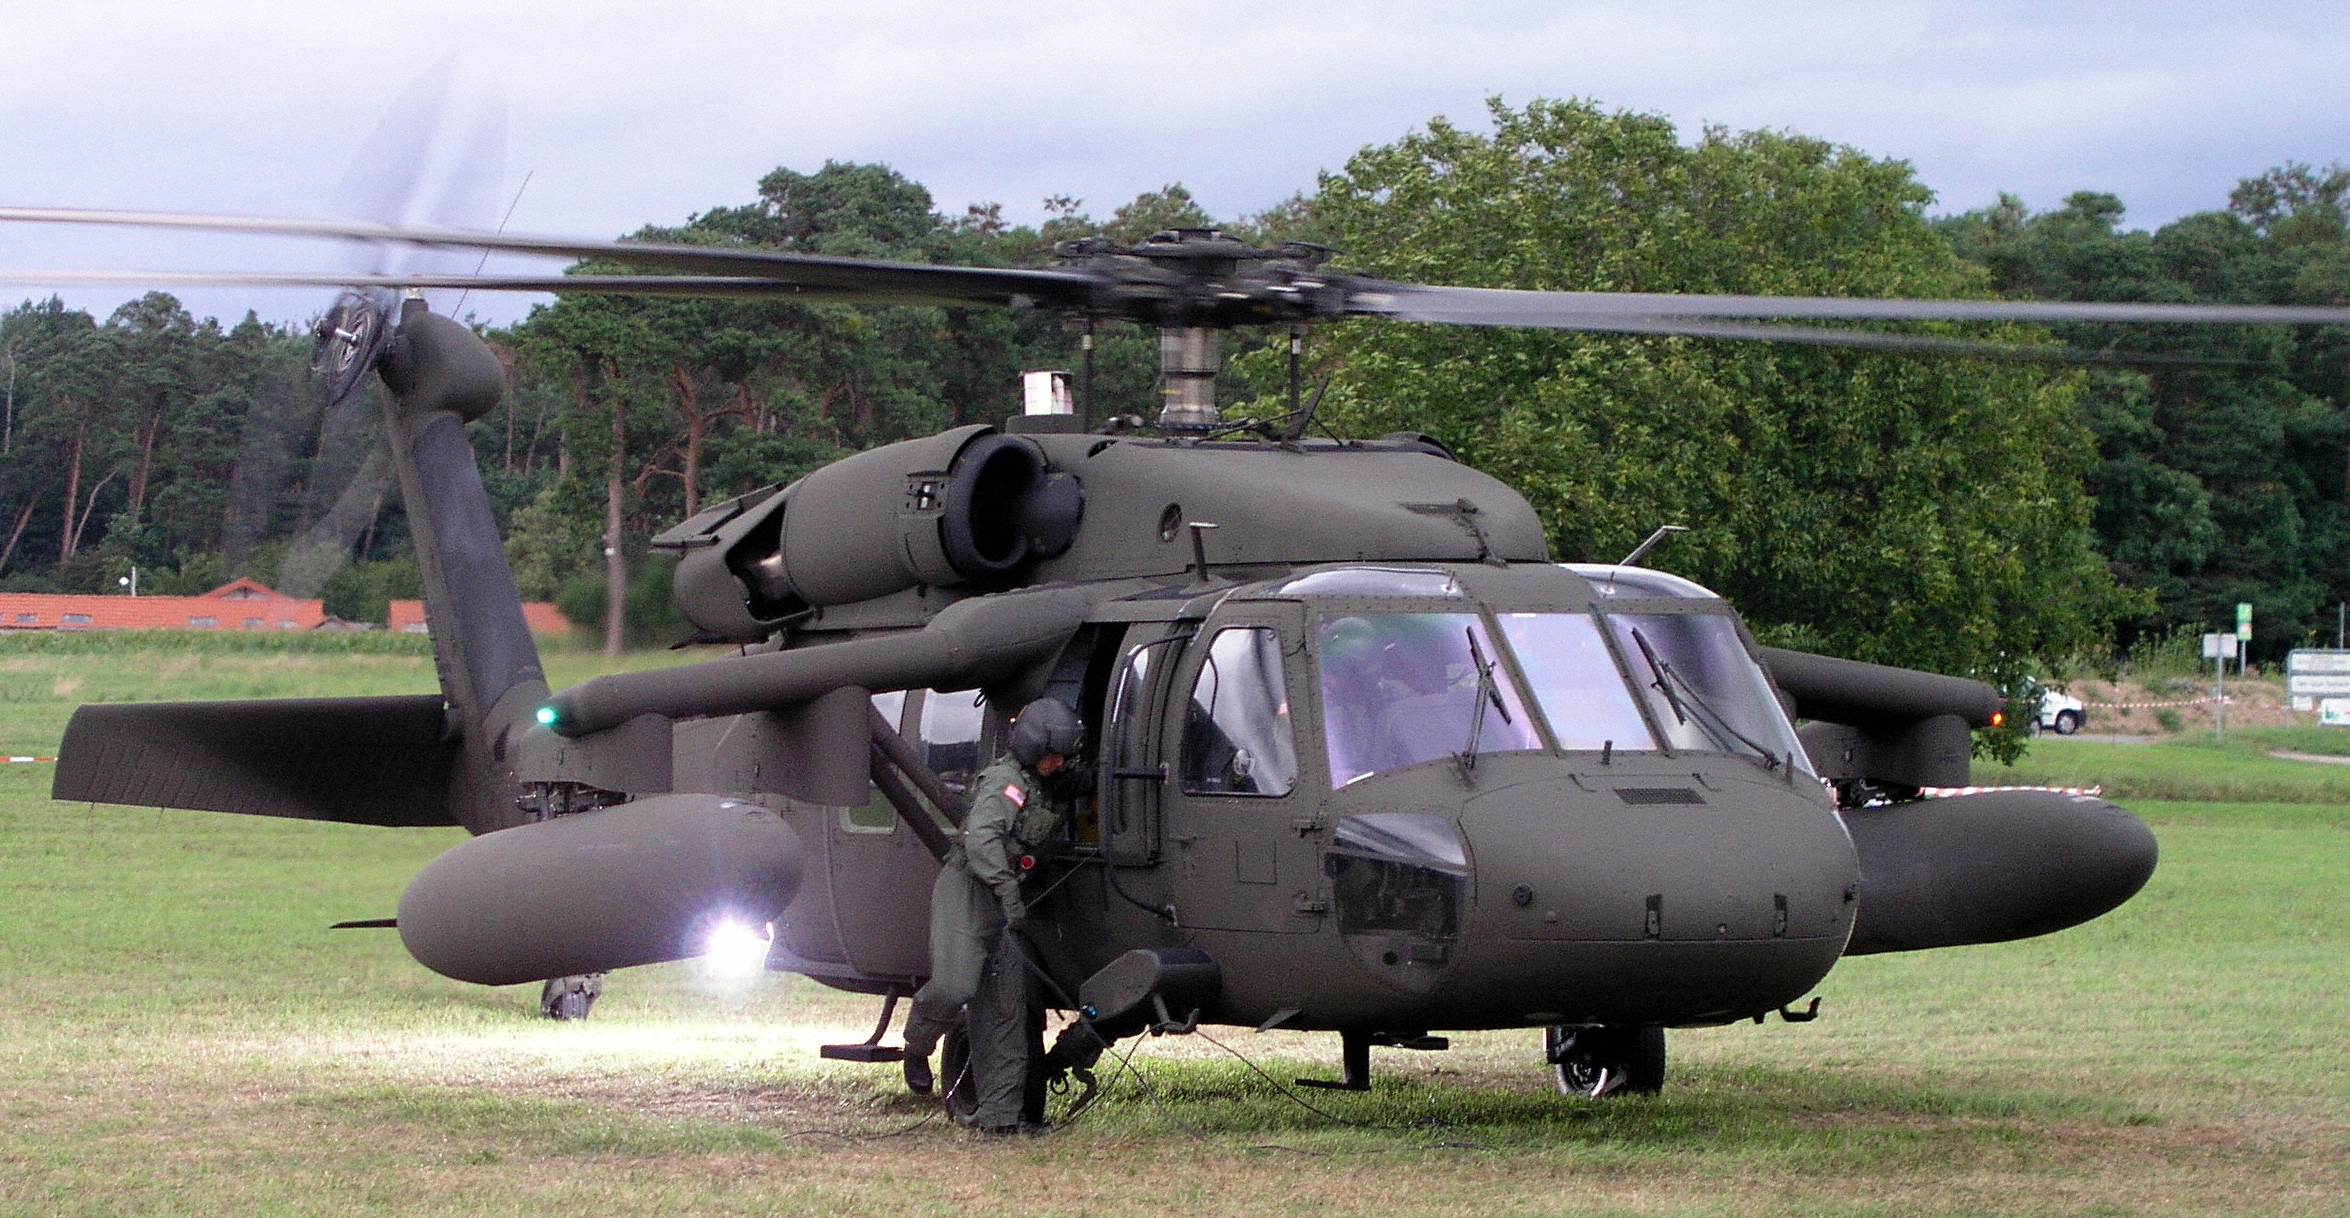 Black hawk sikorsky uh-60 photo